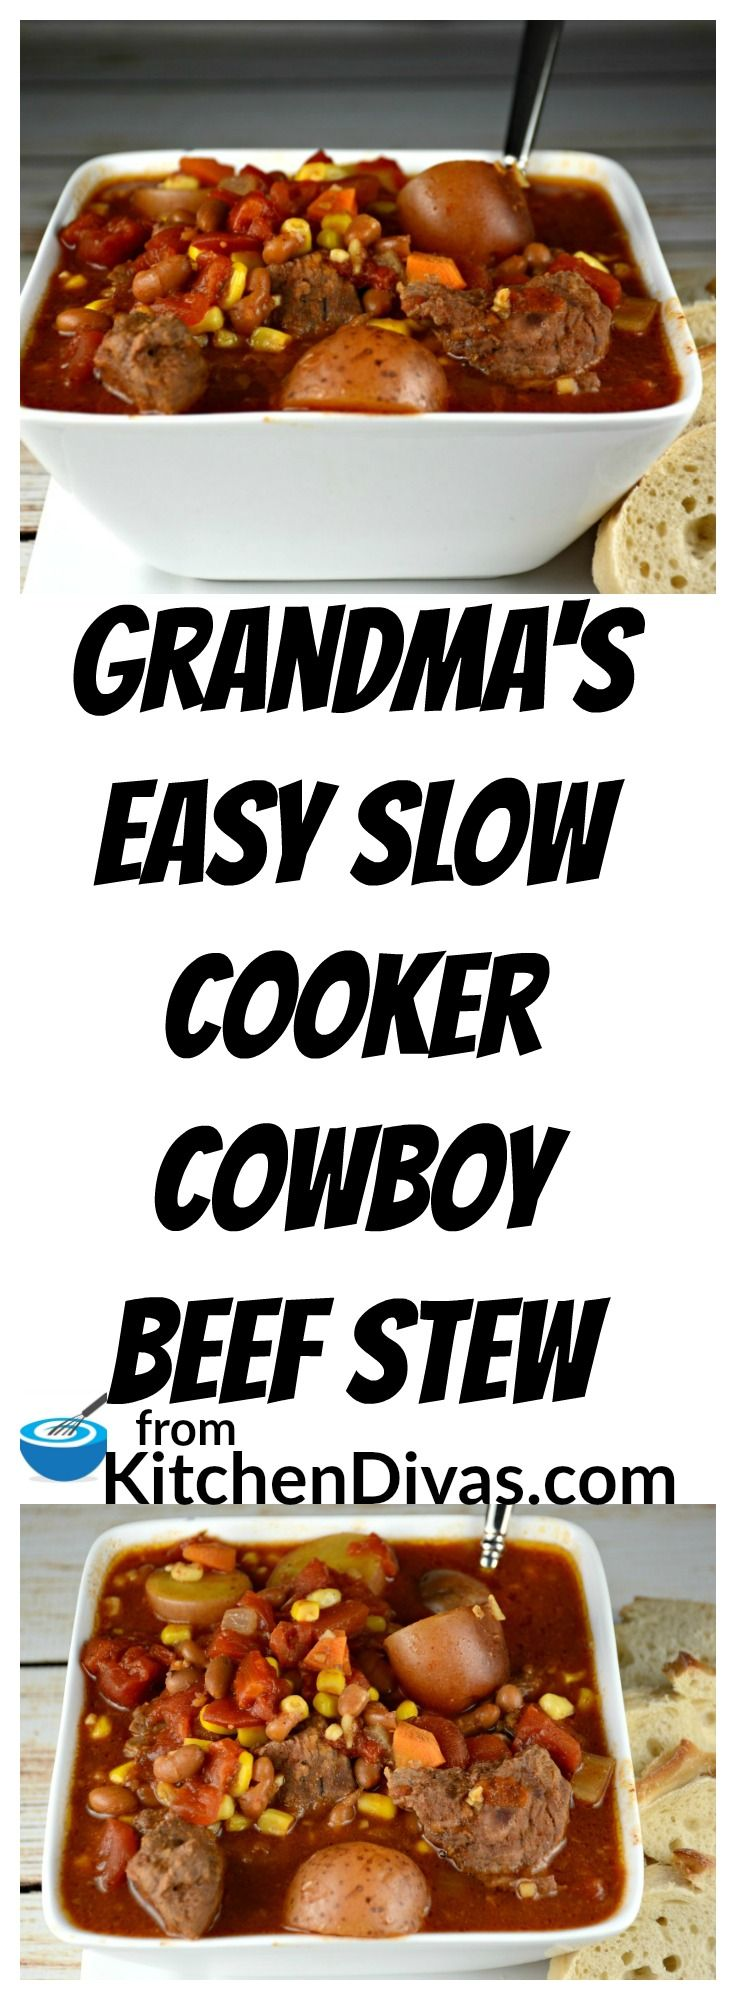 This recipe for my Grandma's Easy Slow Cooker Cowboy Beef Stew is a winter staple around here. Perfect for cooler days or if you just want an easy meal to prepare in the morning and eat at night. My grandmother used to cook this all day on low and it was always so yummy! I didn't realize how easy this satisfying meal was until I was older. Lots of beef, potatoes and vegetables! Yummy!